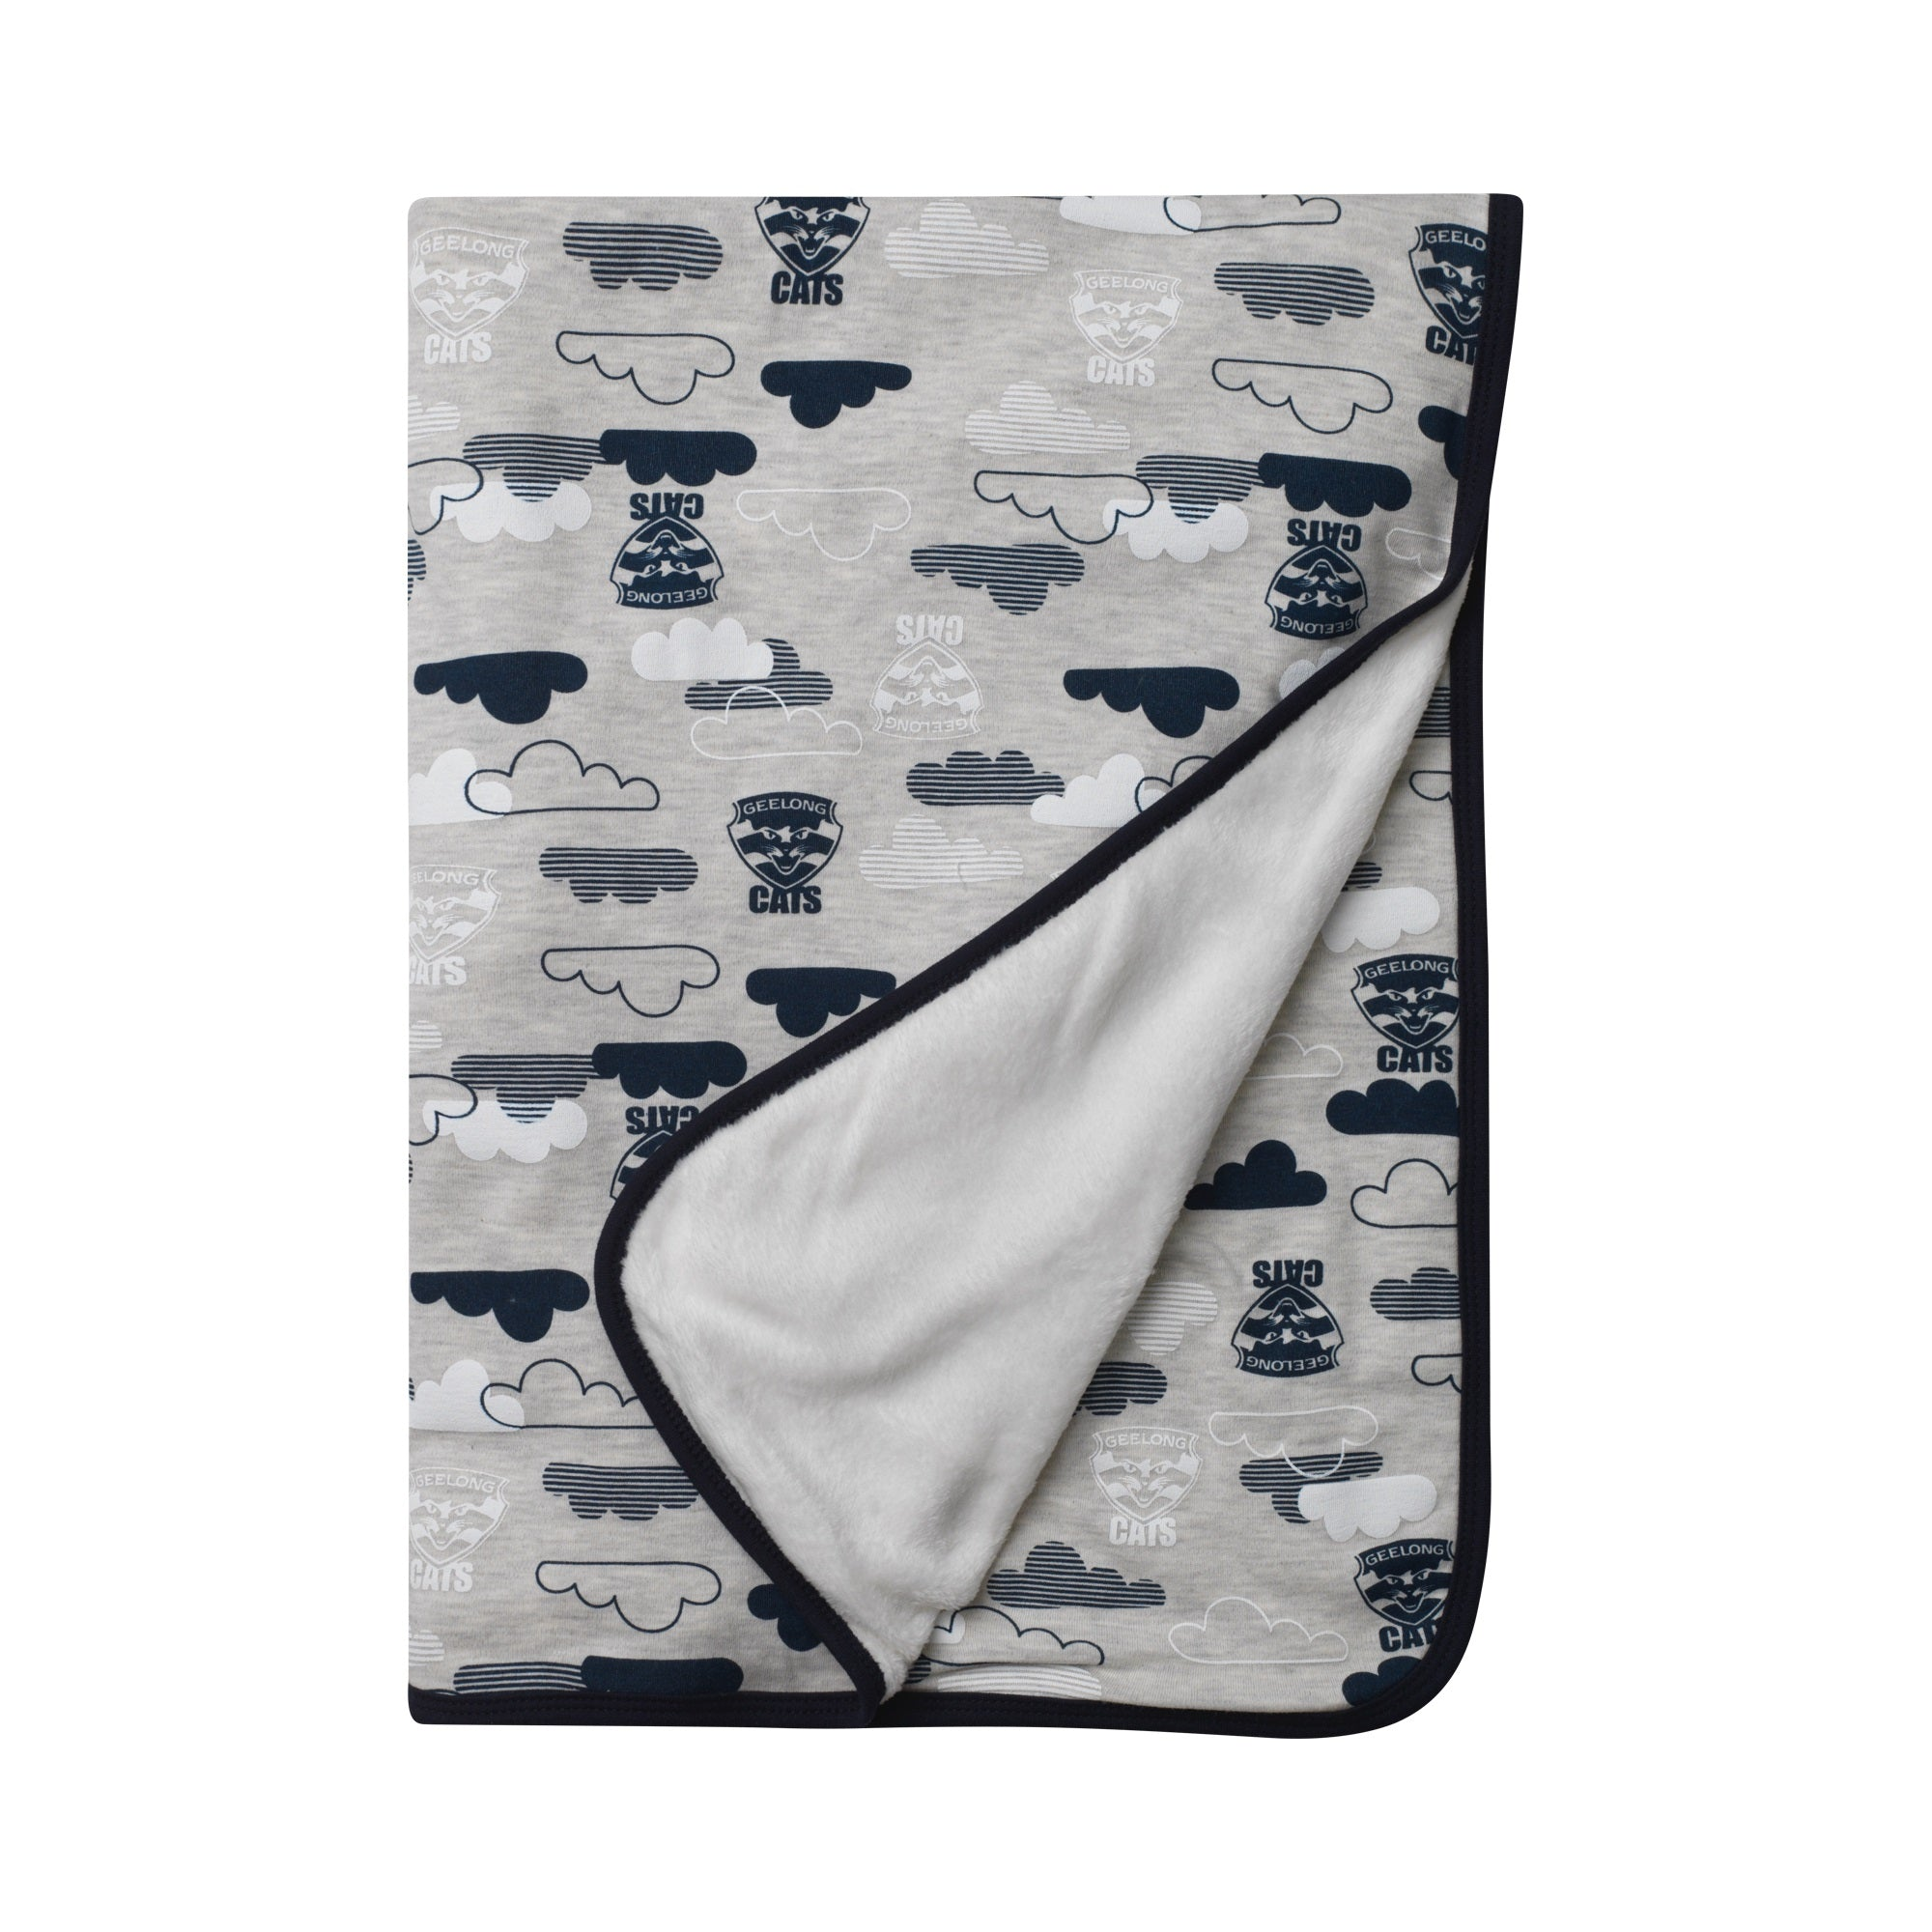 e2bb89653 Geelong Cats Baby Blanket Towel